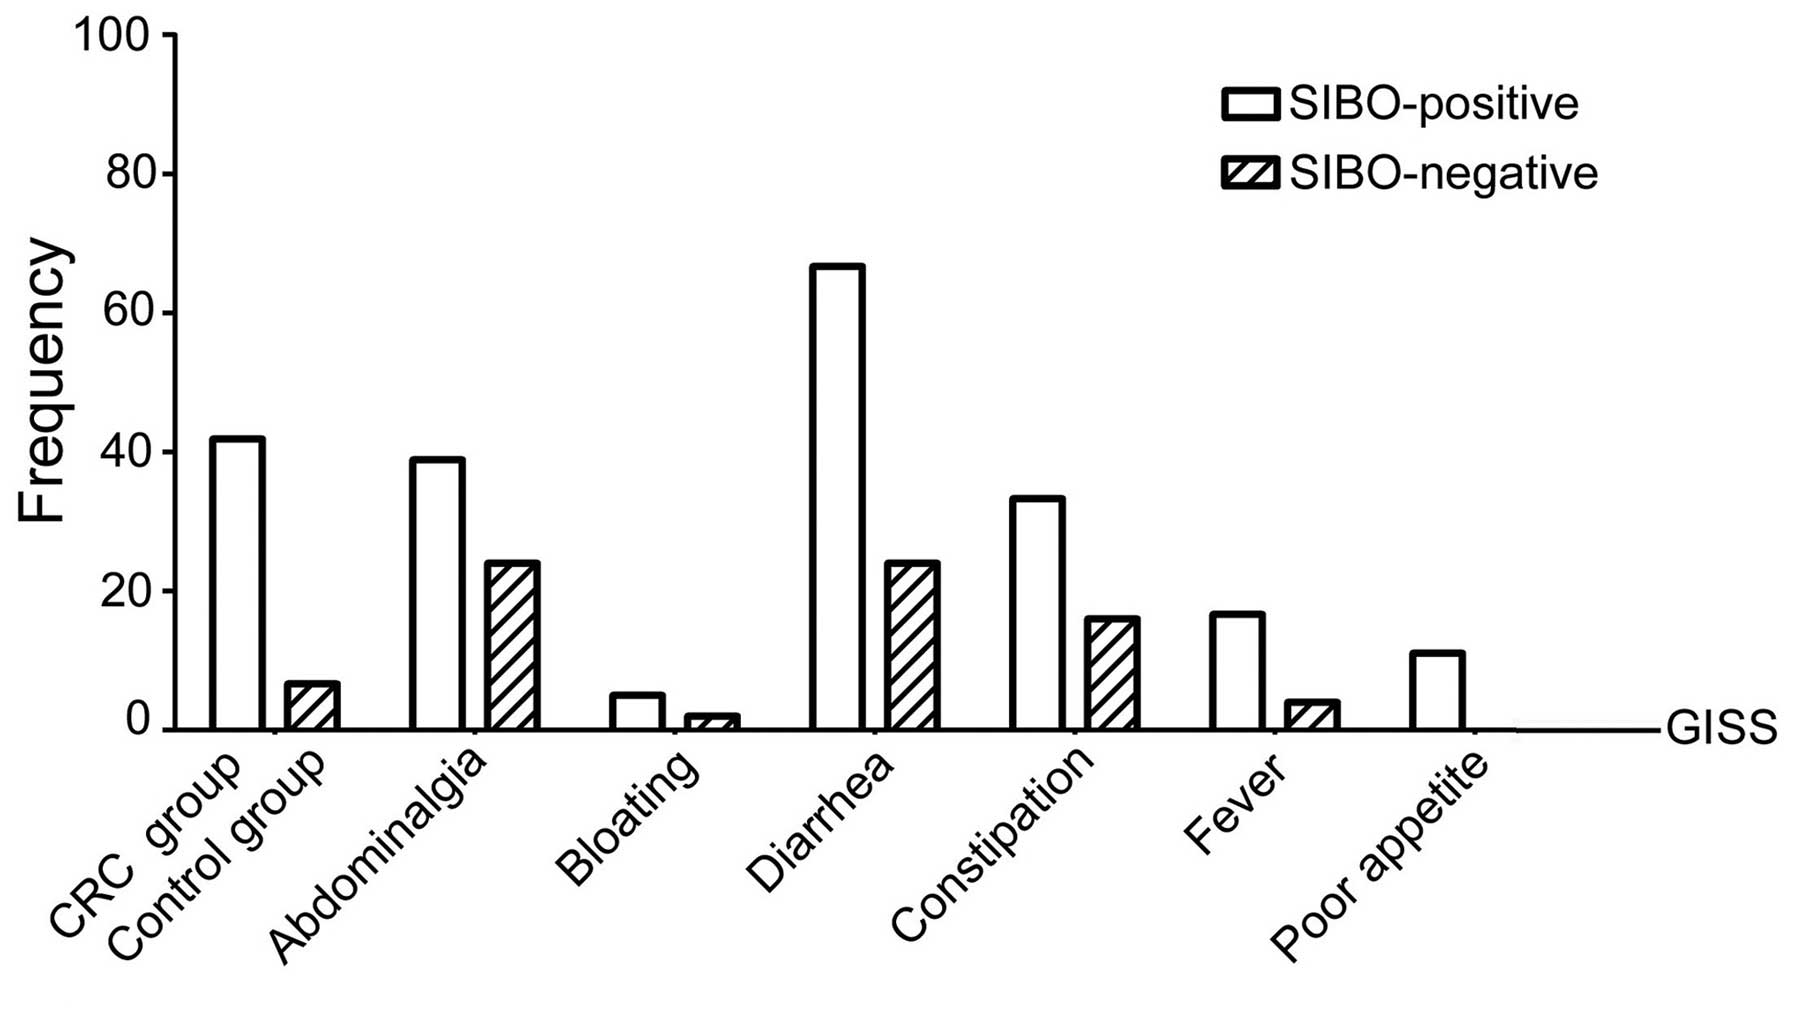 Prevalence And Treatment Of Small Intestinal Bacterial Overgrowth In Postoperative Patients With Colorectal Cancer